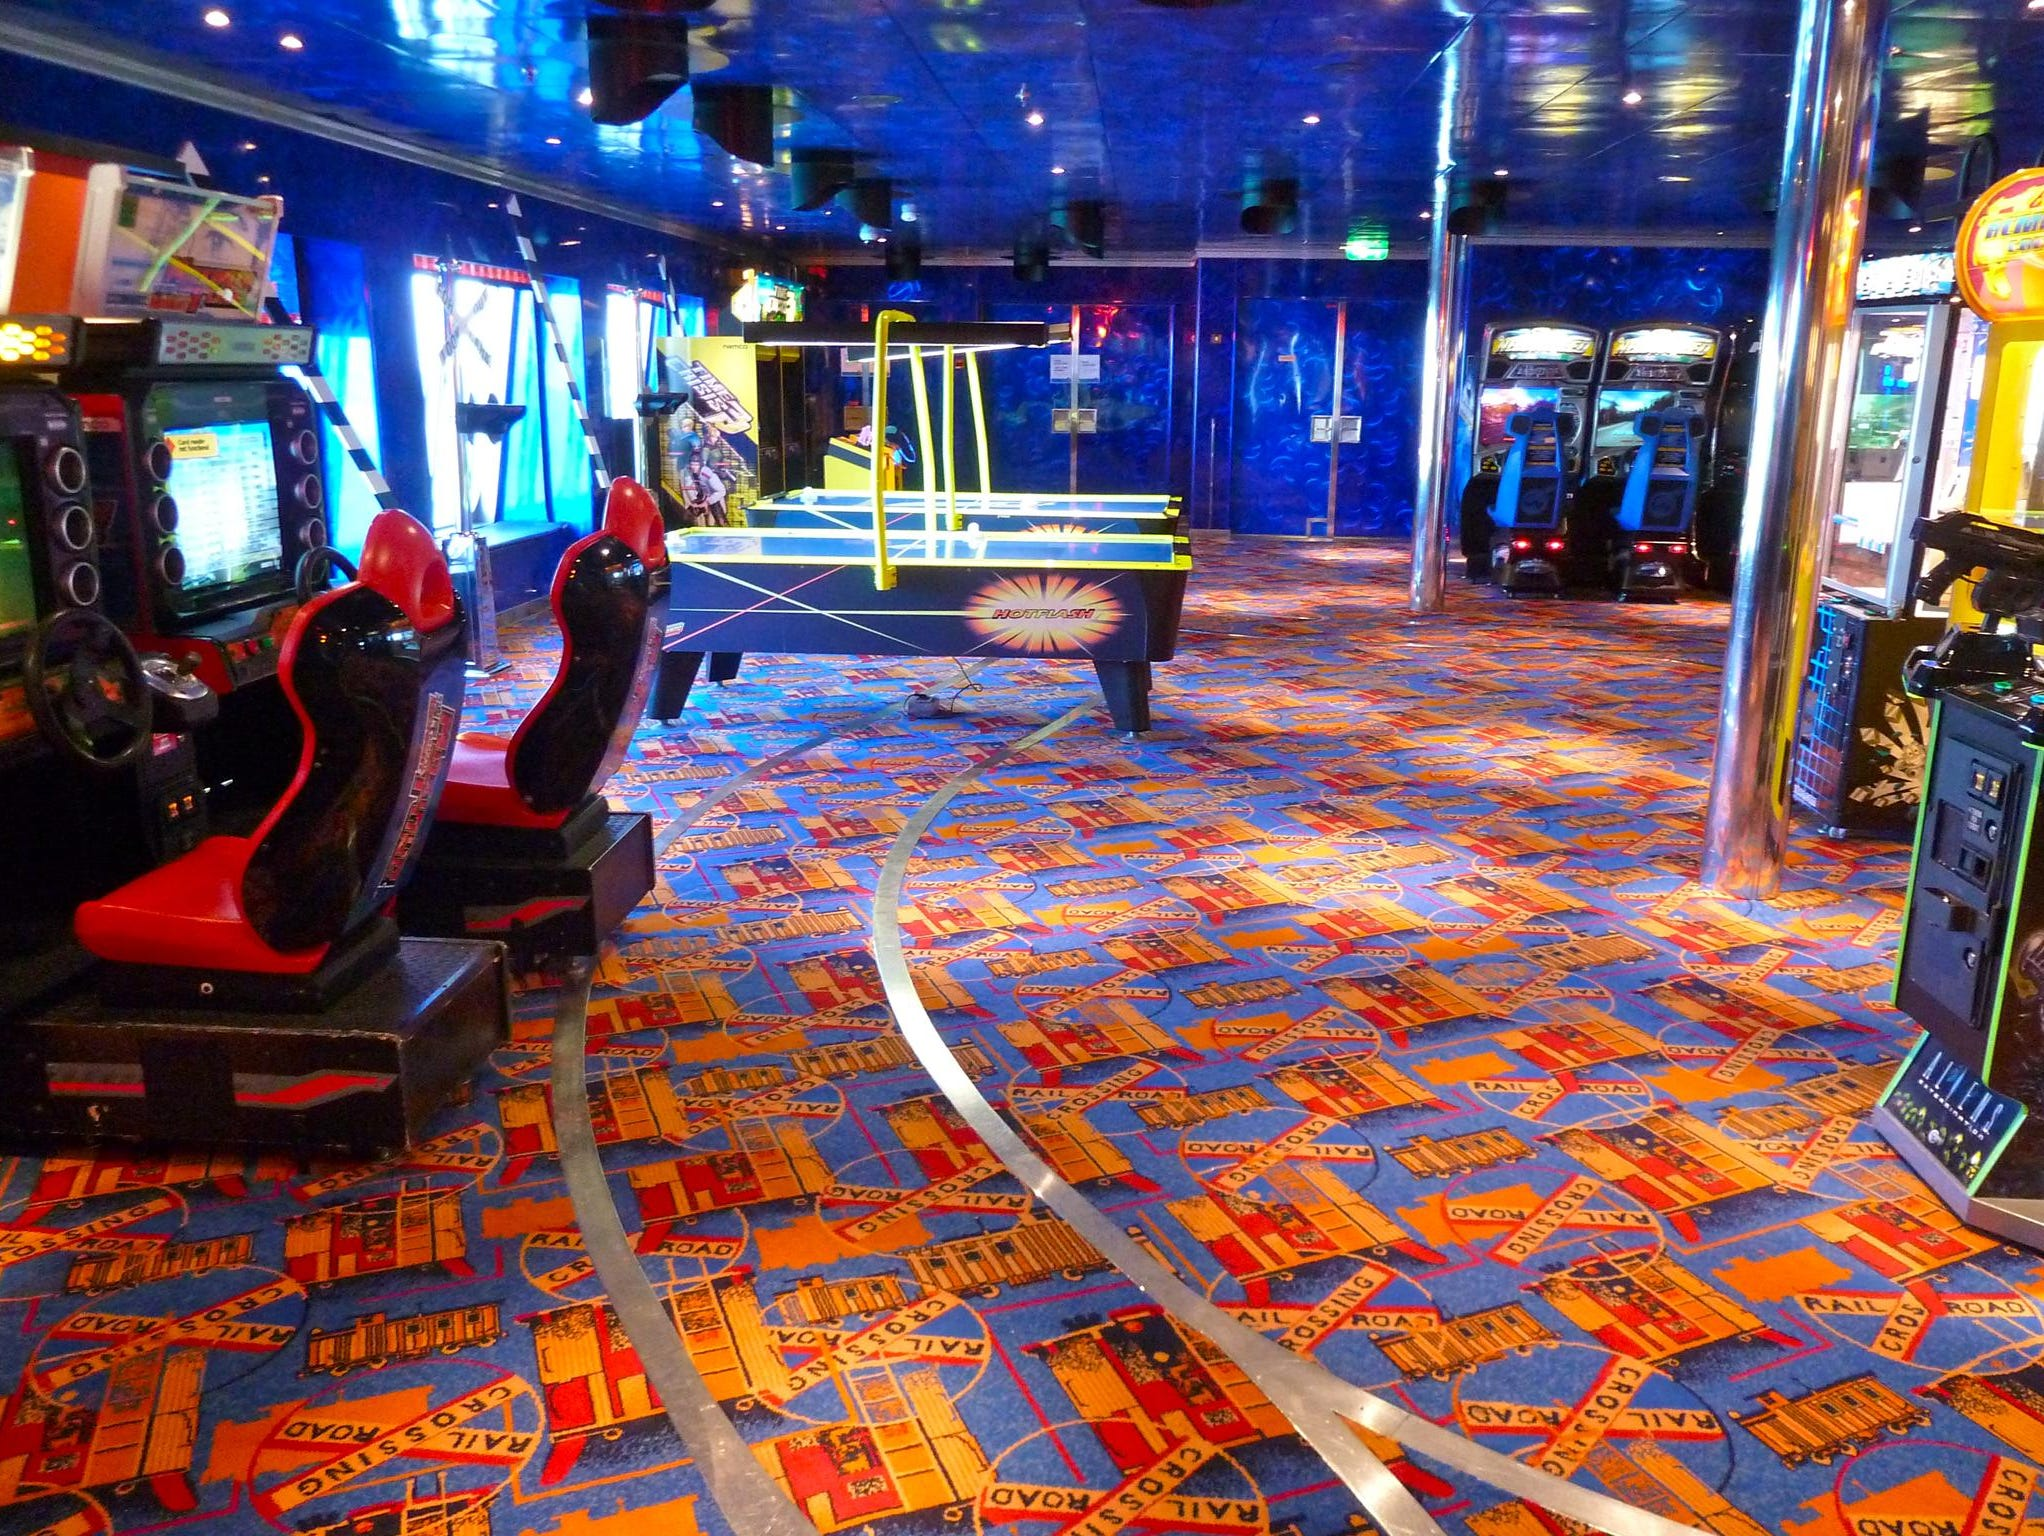 An extensive video arcade adjoins Club O2, continuing its railroad decorative theme.